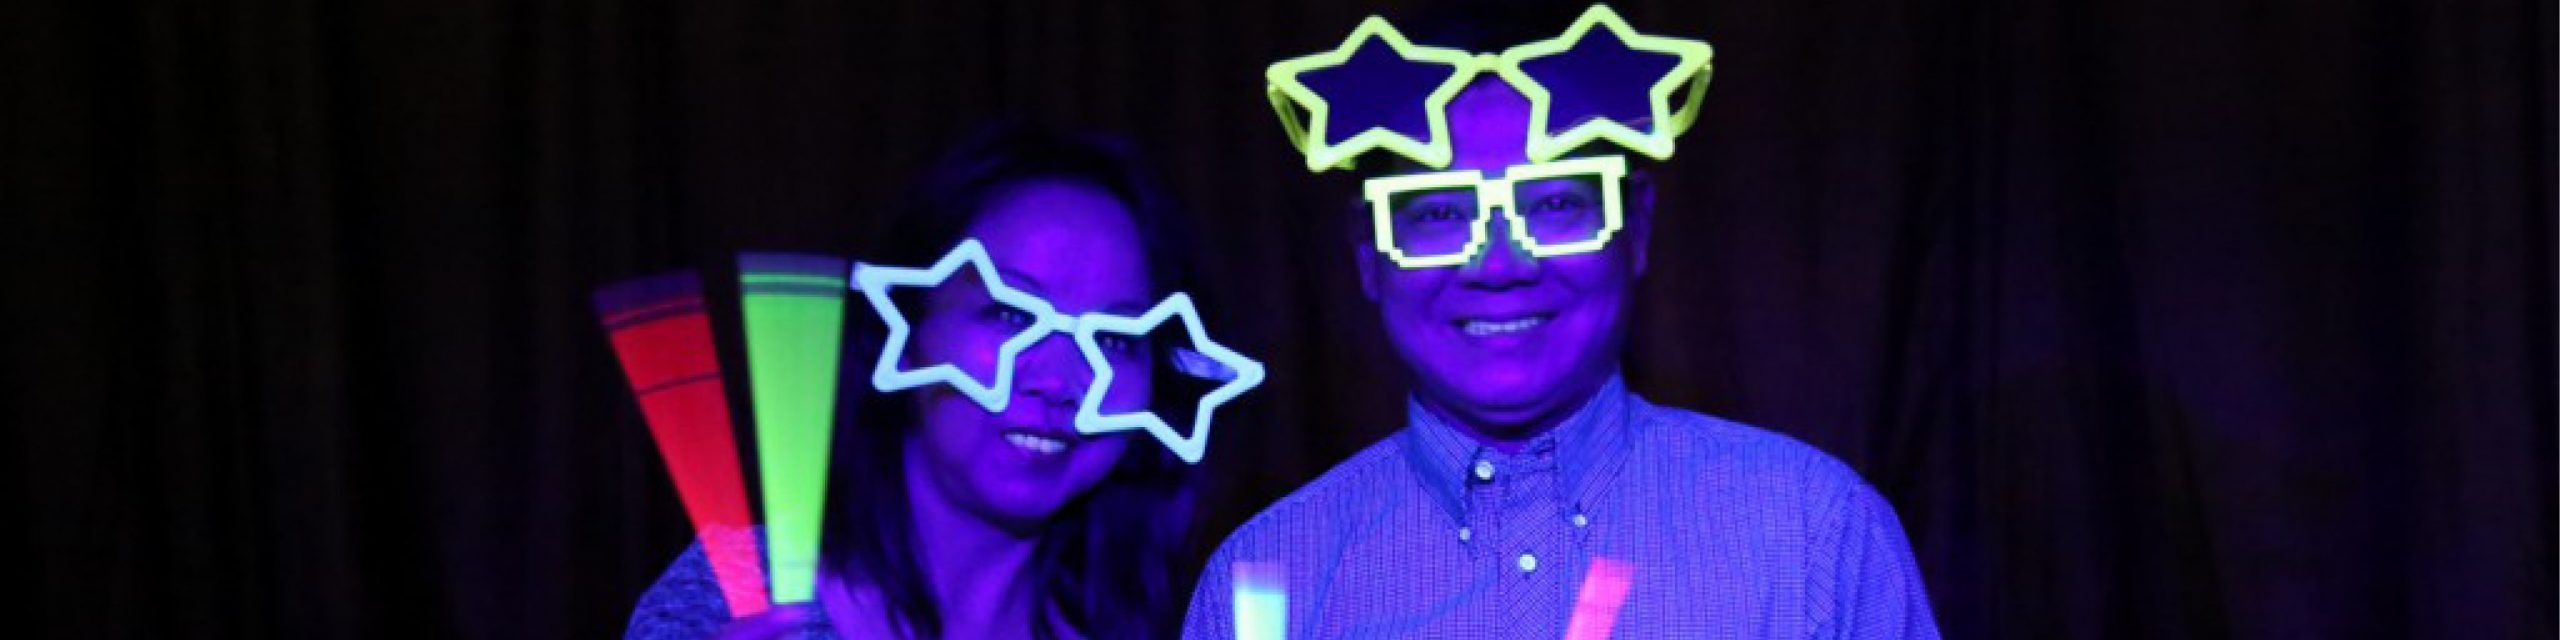 Glow In The Dark Booth